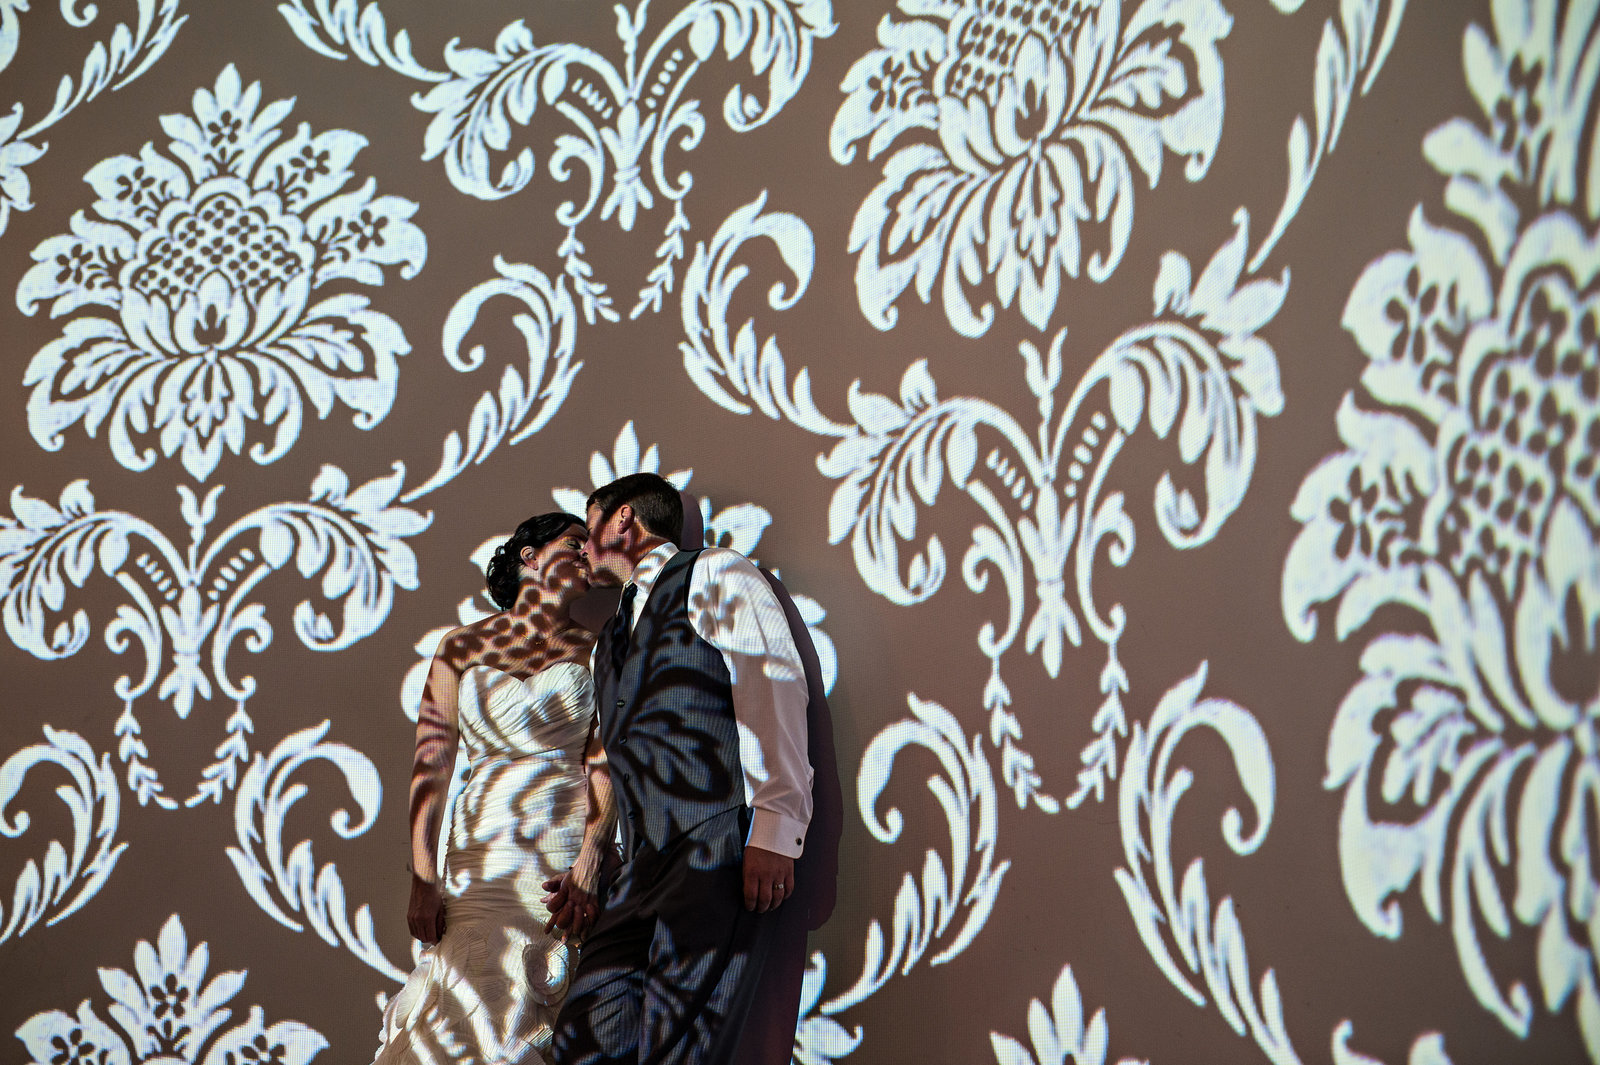 A couple kiss in the light on the wall at their Vie Wedding in Philly.